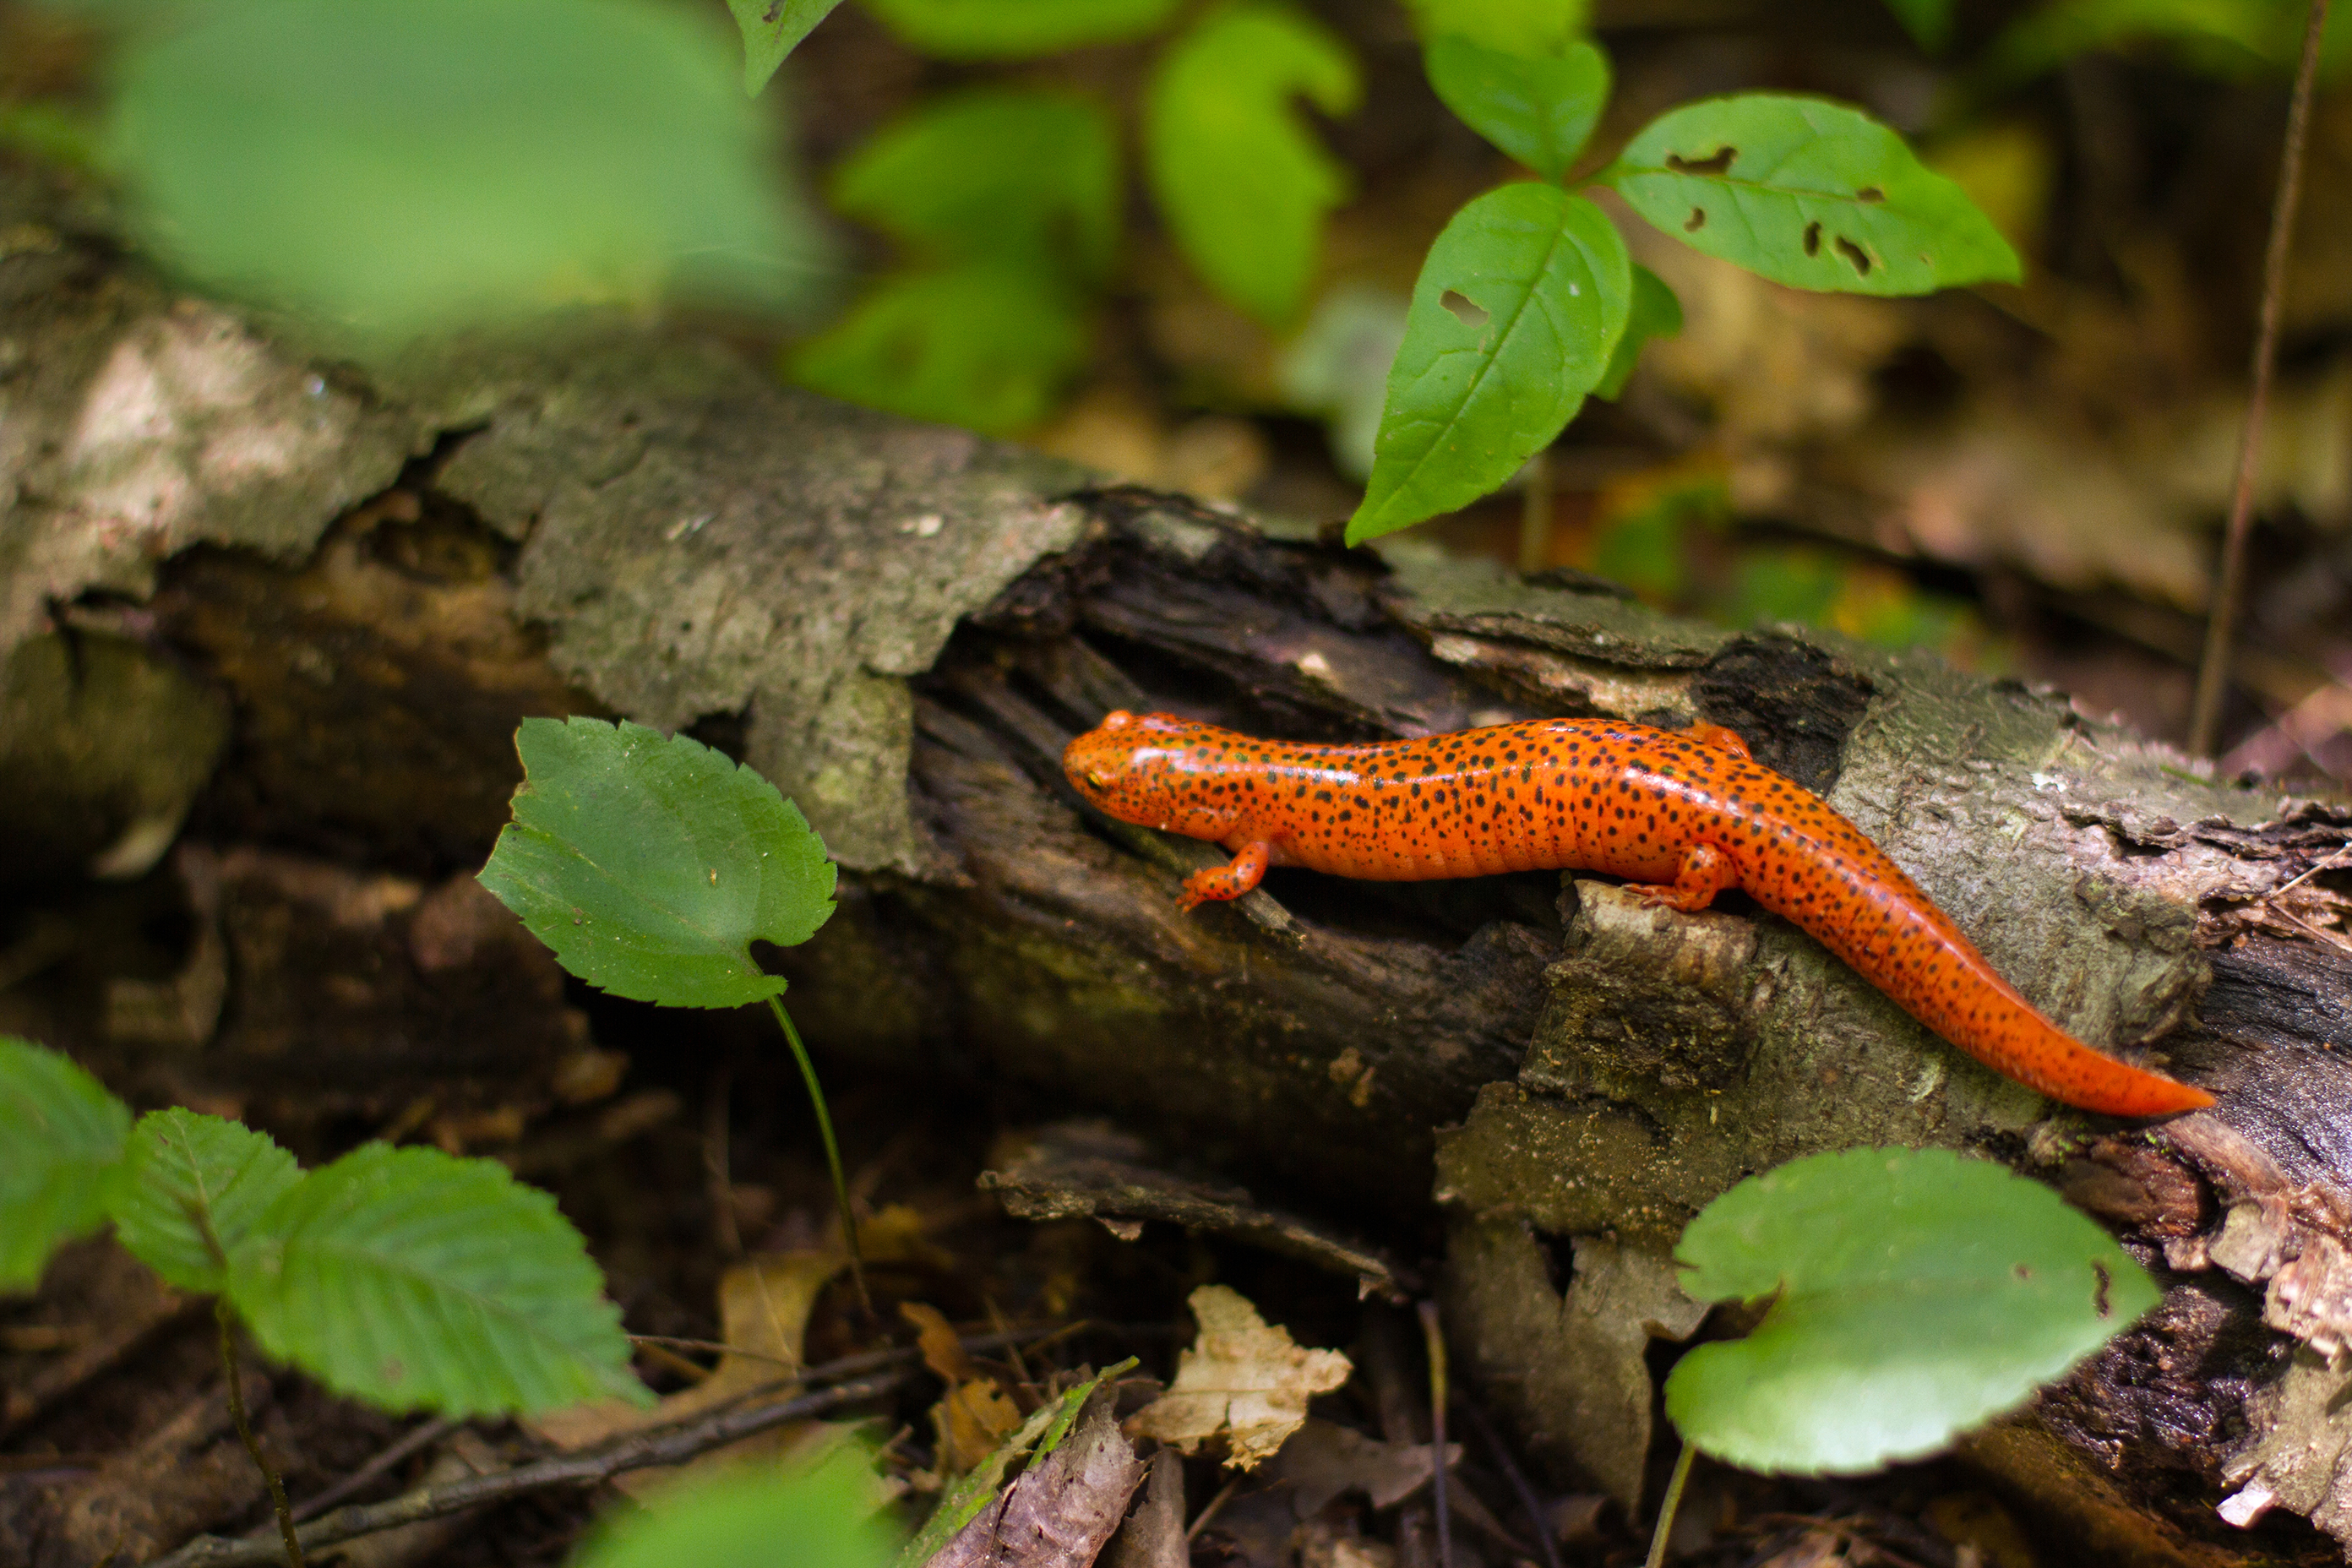 Salamanders are a common find at Powdermill, where water sources and forest habitats are healthy. The red salamander is among the most striking. Photo by Pamela Curtin, PNR